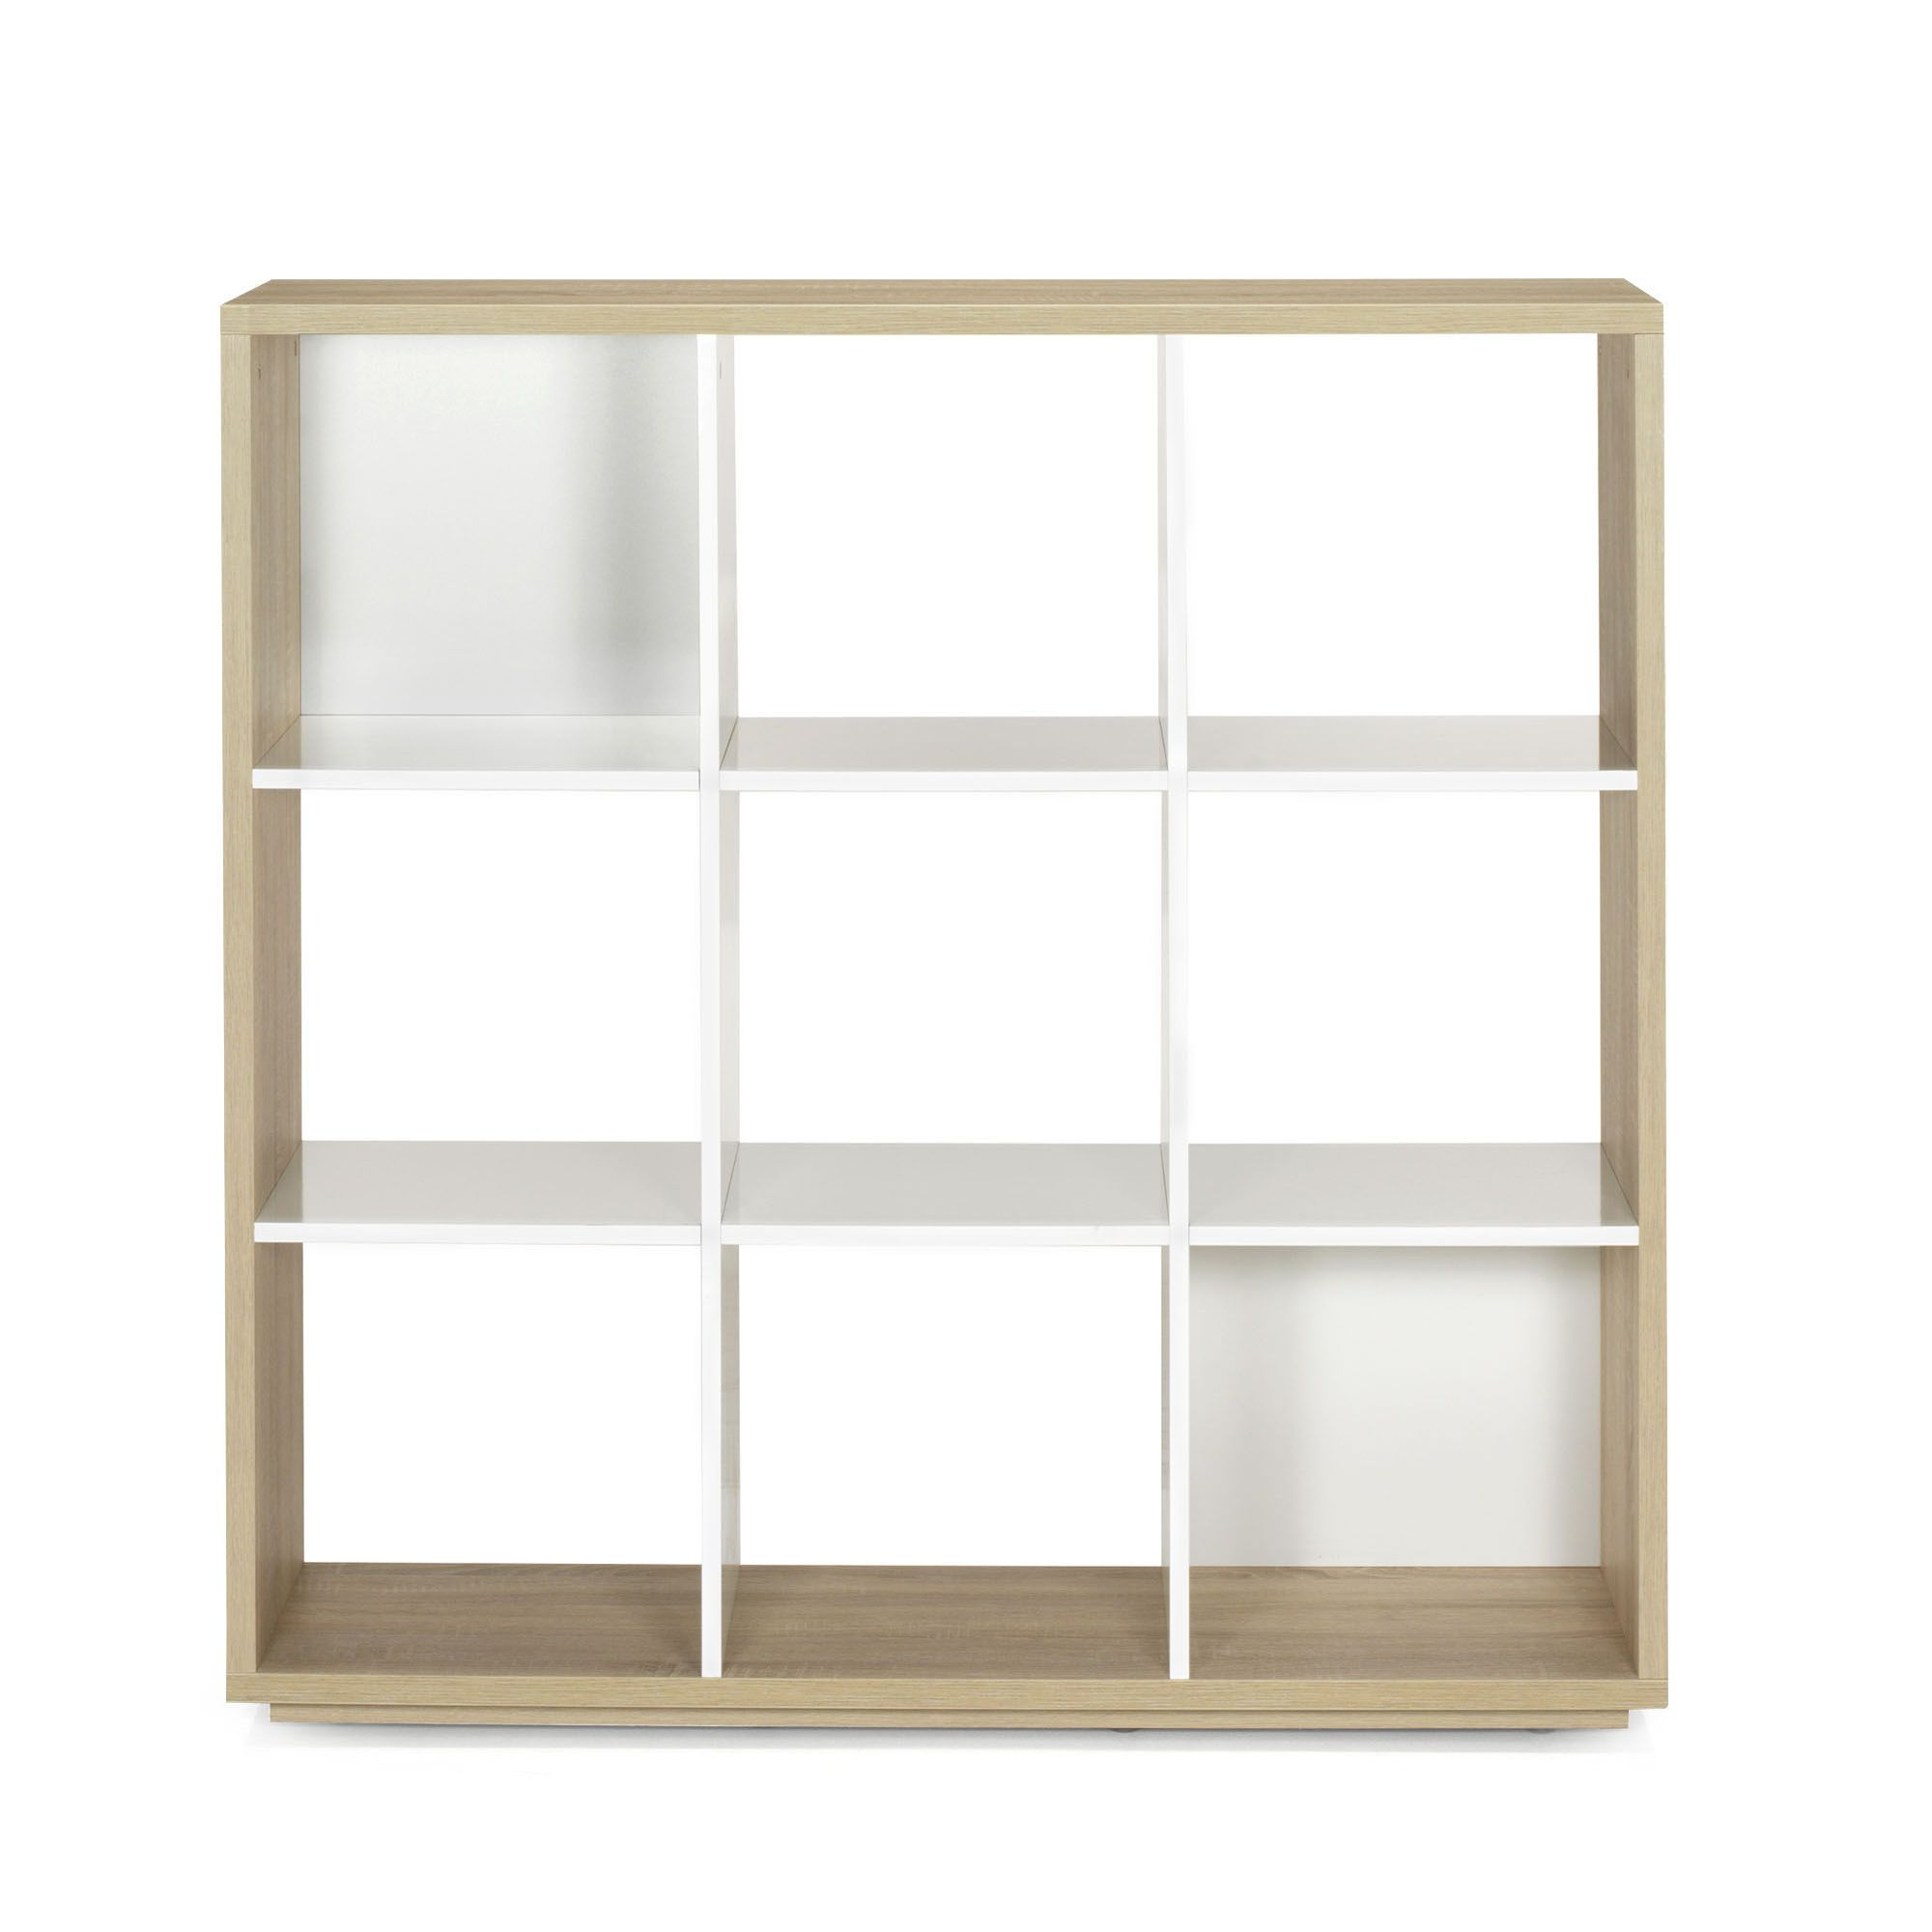 Alinea Meuble A Case Bibliothèque 9 Cases Design Scandinave Checker Alinea Home